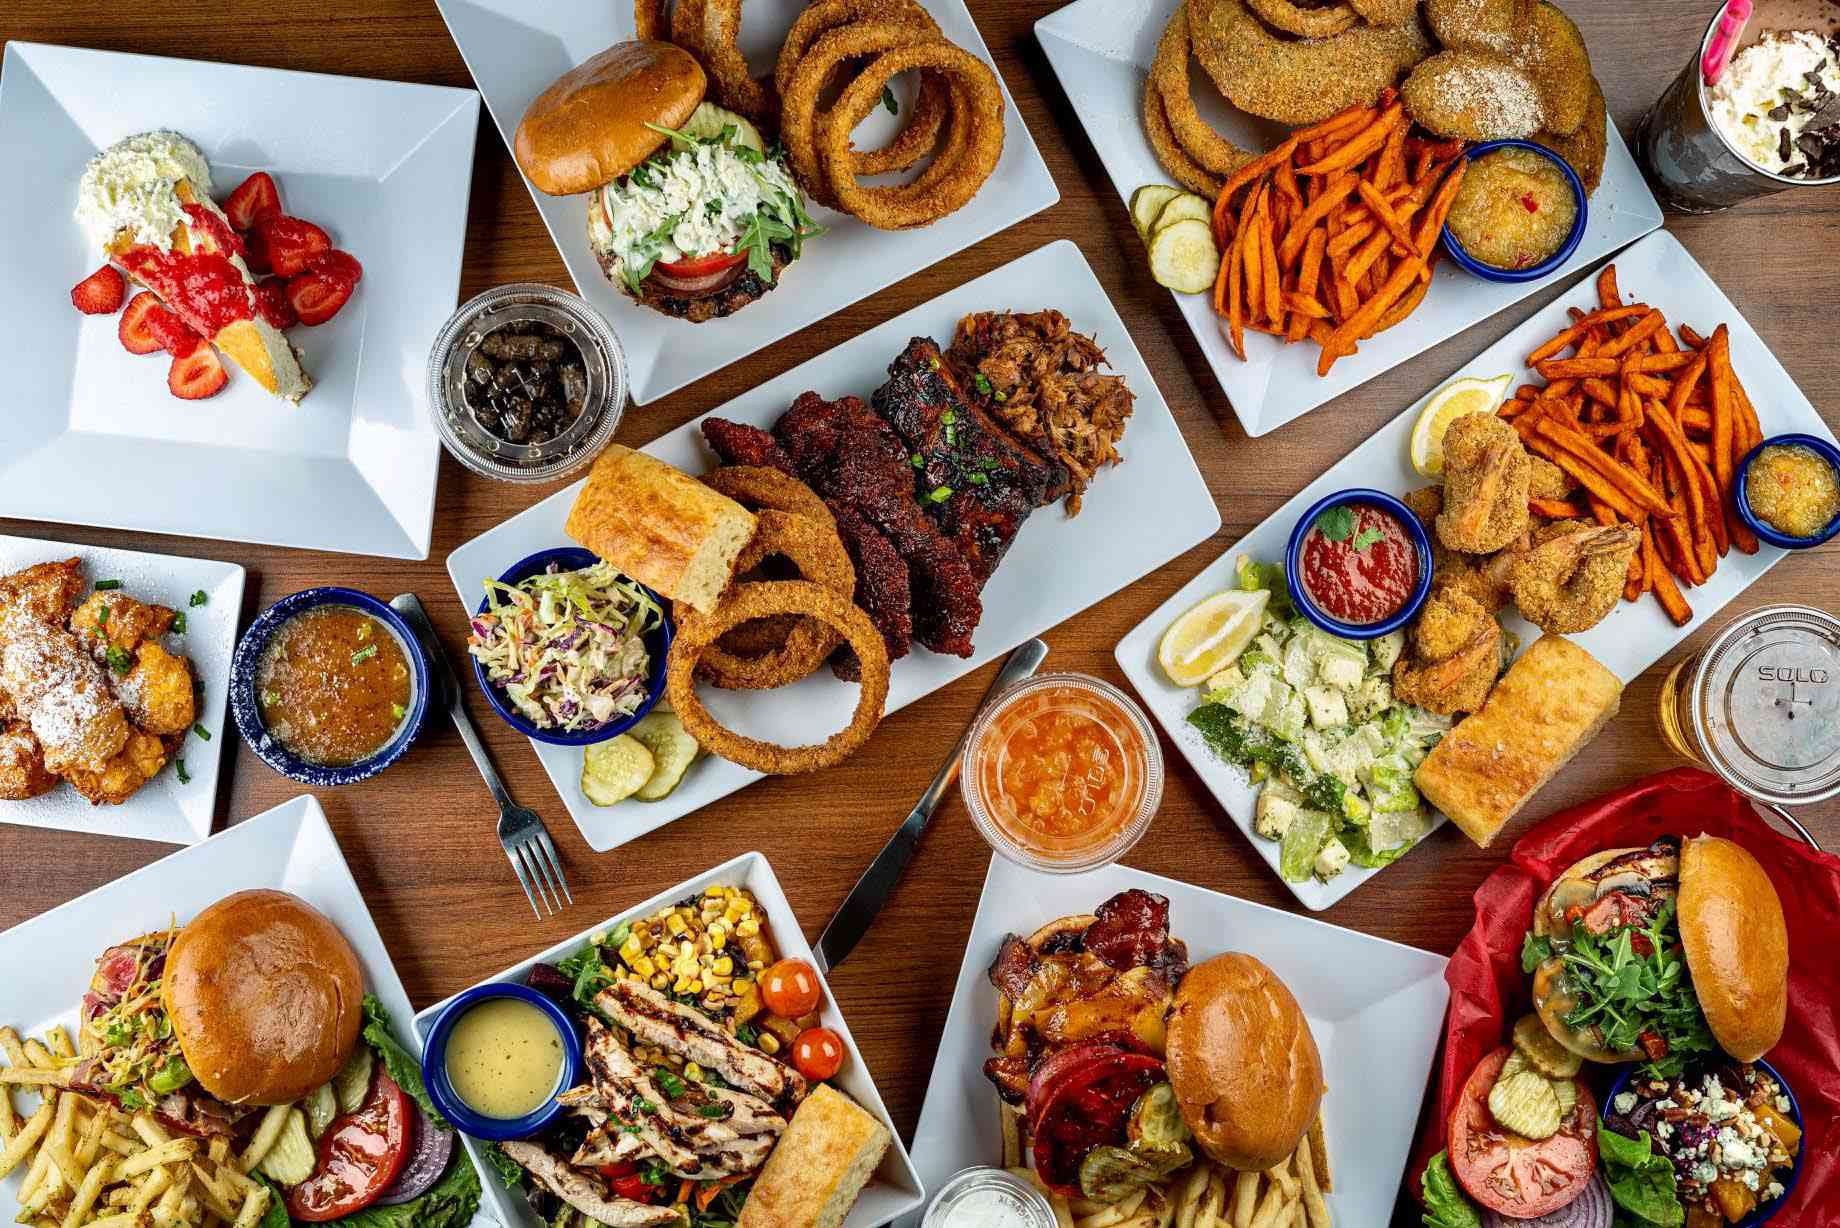 A birds eye view of a table filled with different foods